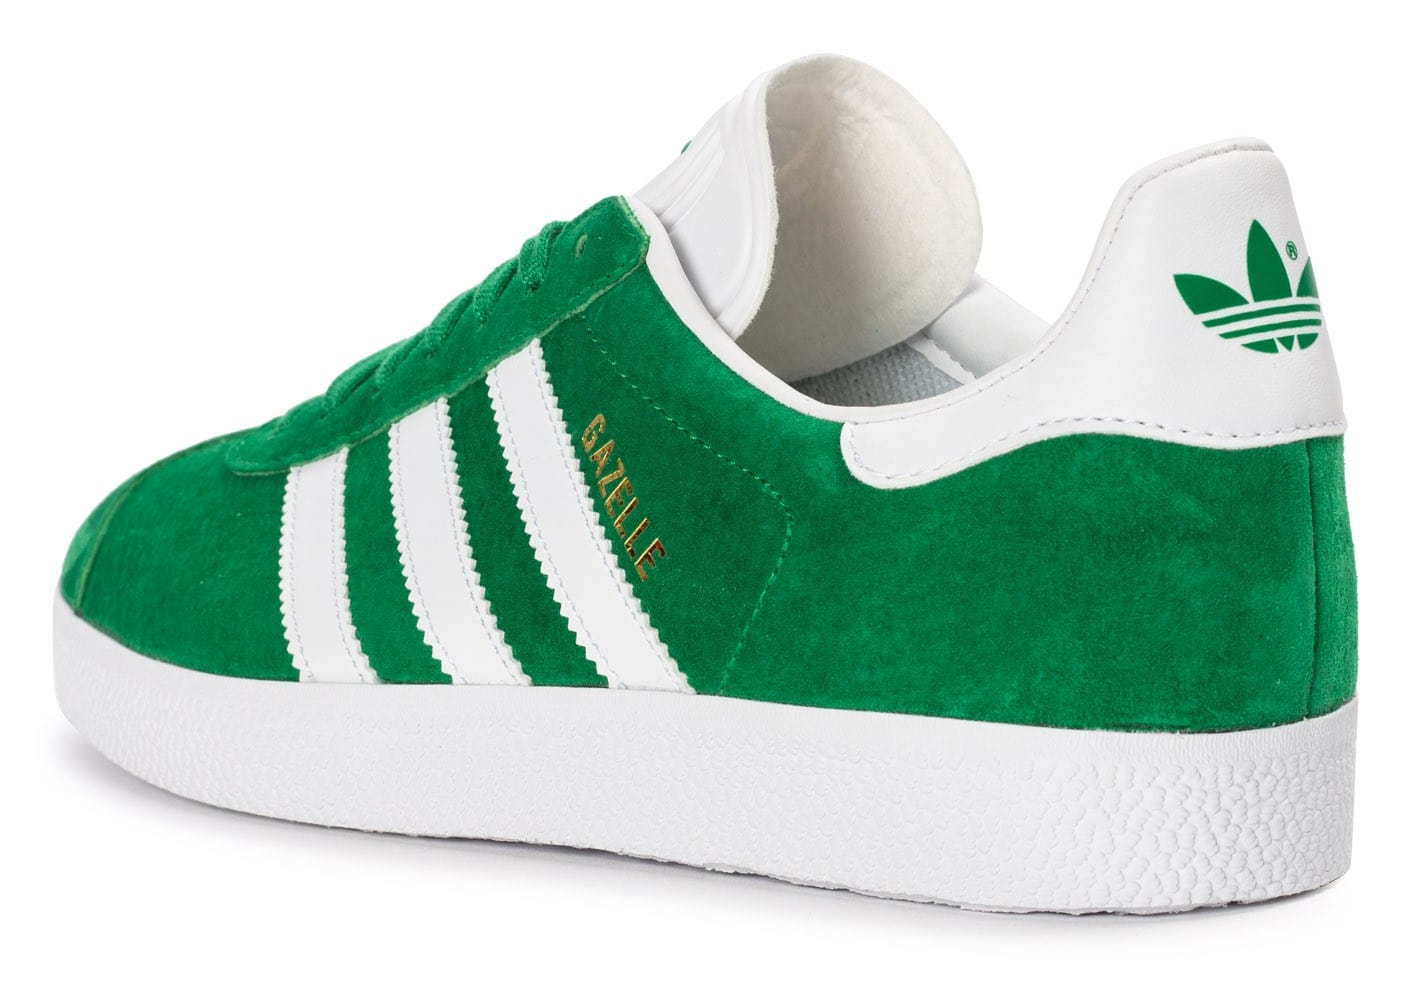 Soldes Homme Adidas Gazelle BB5477 vert OS2859FF Biomimicron